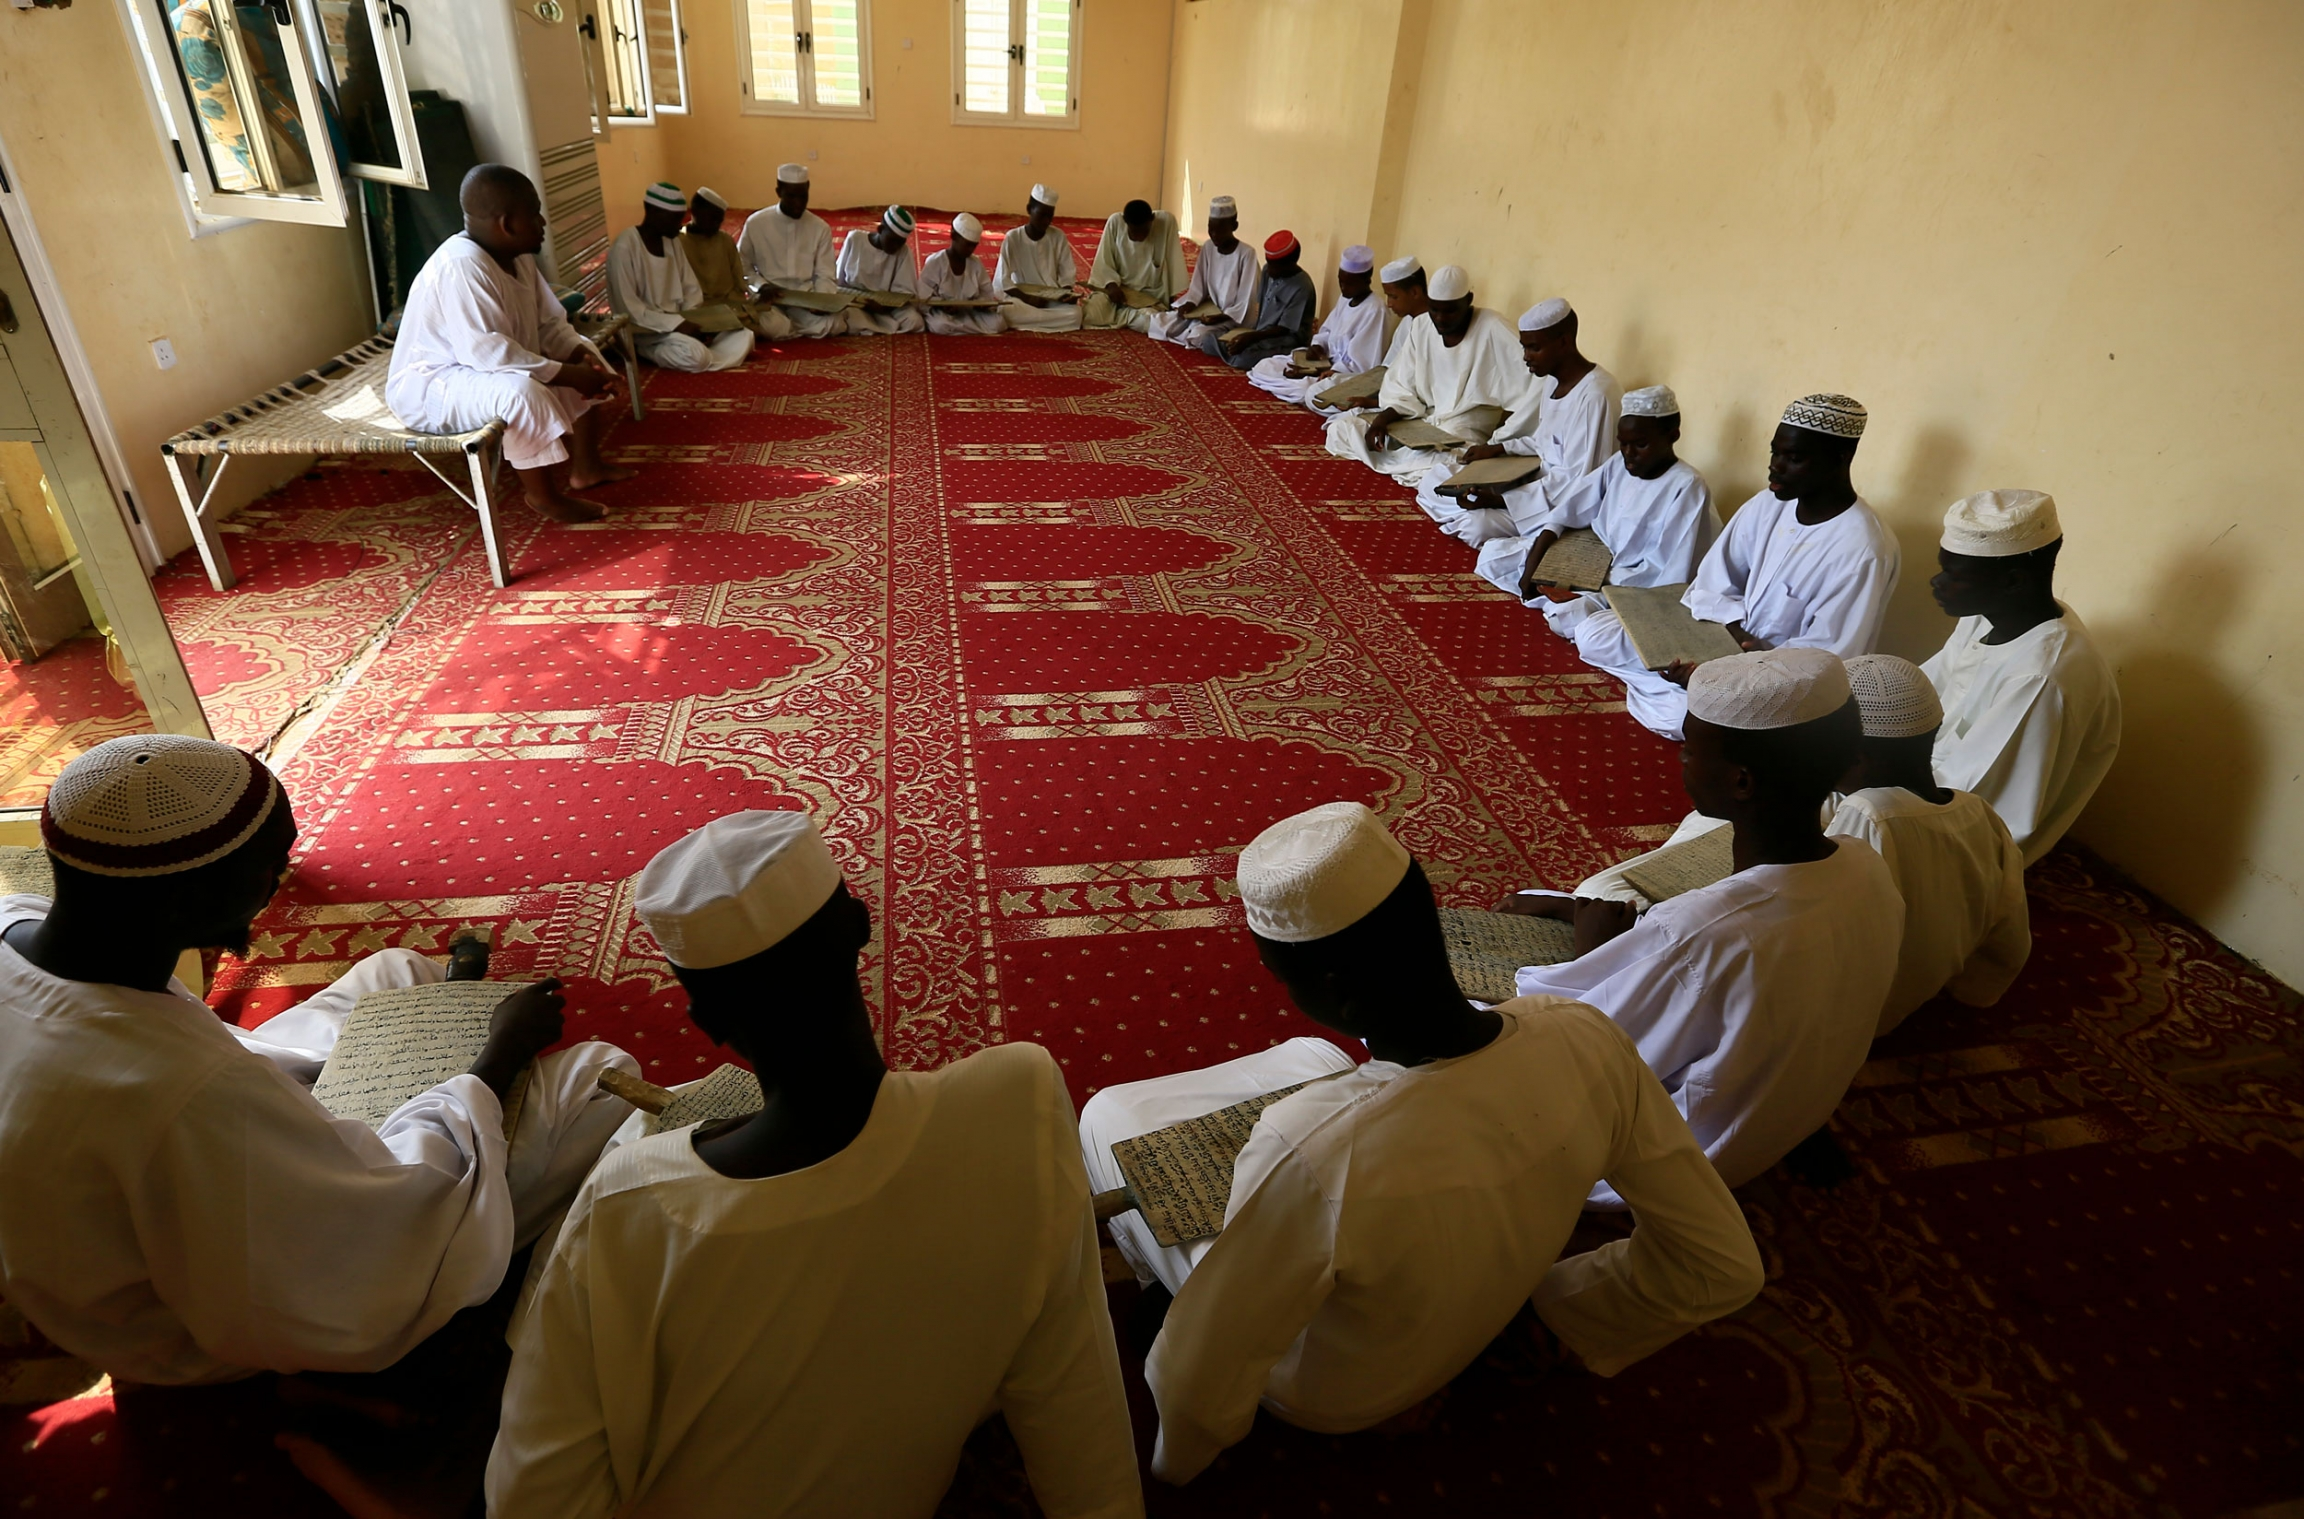 A large group of young men are shown sitting in a half circle on the ground and holding wooden boards with Islamic text.